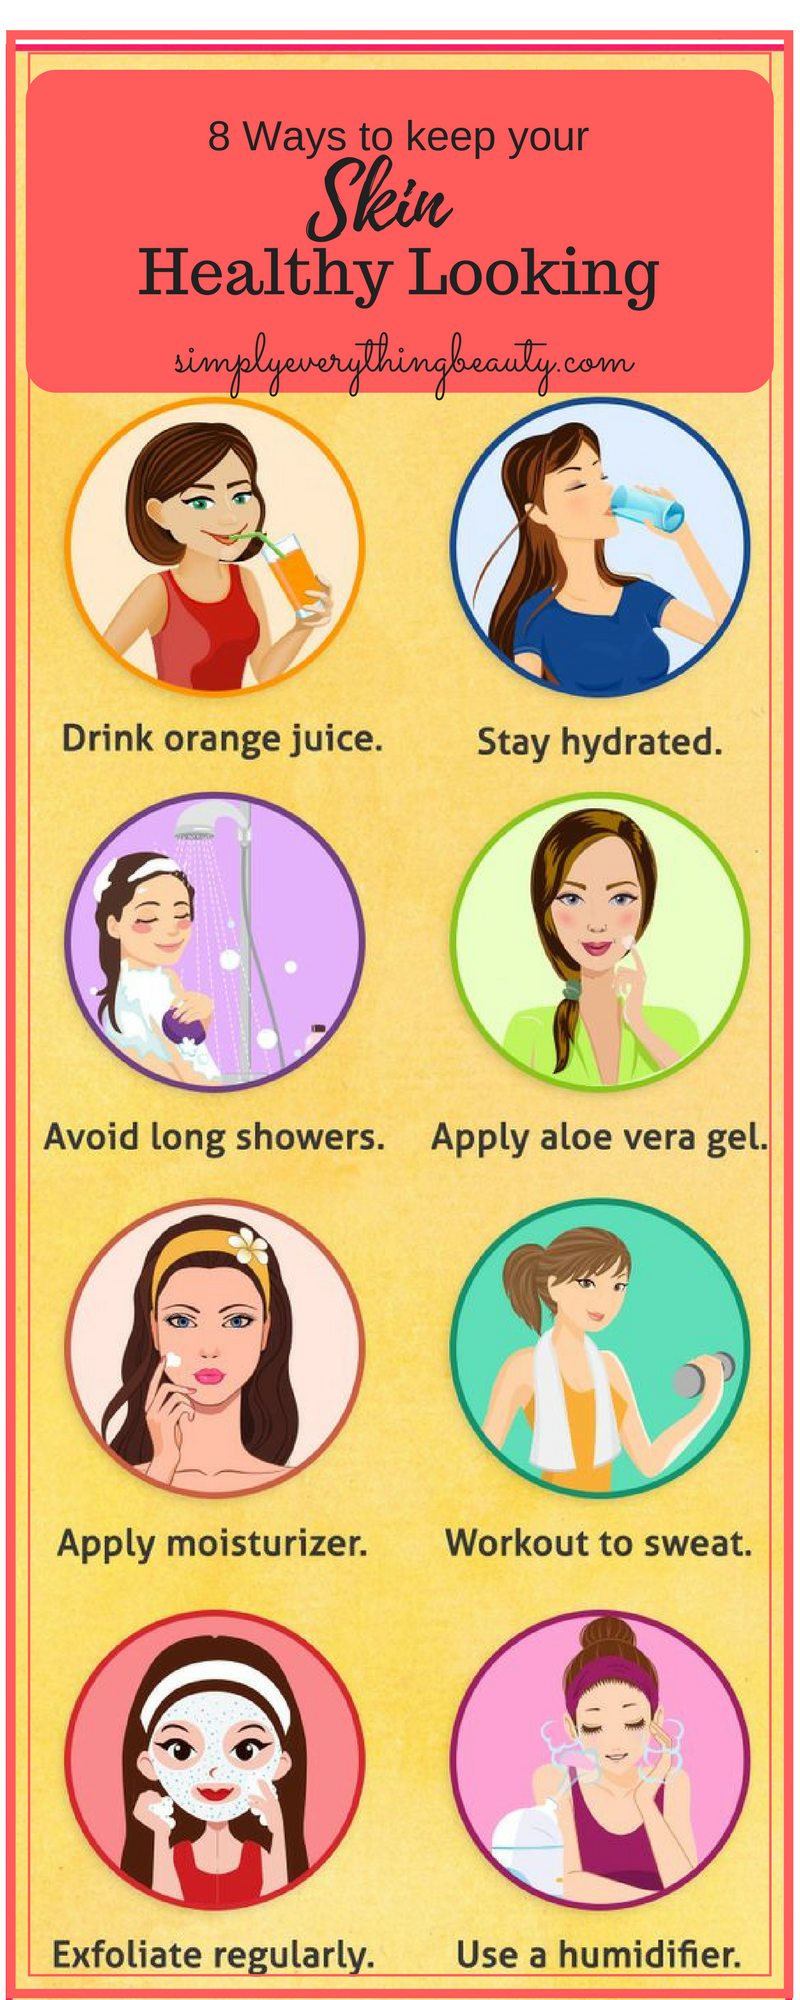 8 Skin Care tips for a healthy look & feel